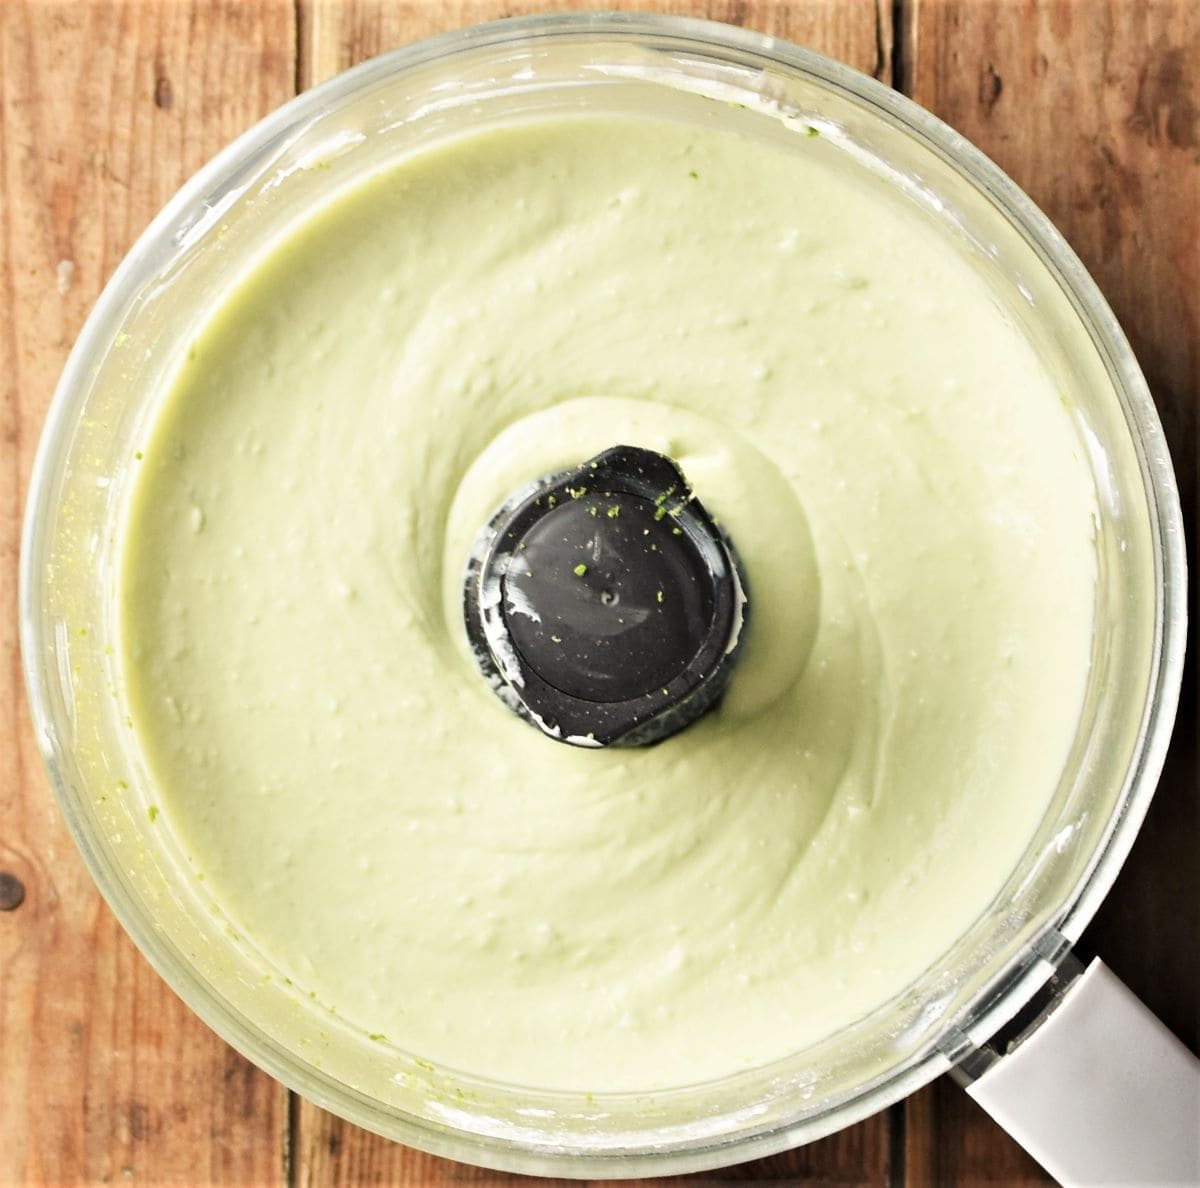 Creamy cheesecake filling mixture in blender.